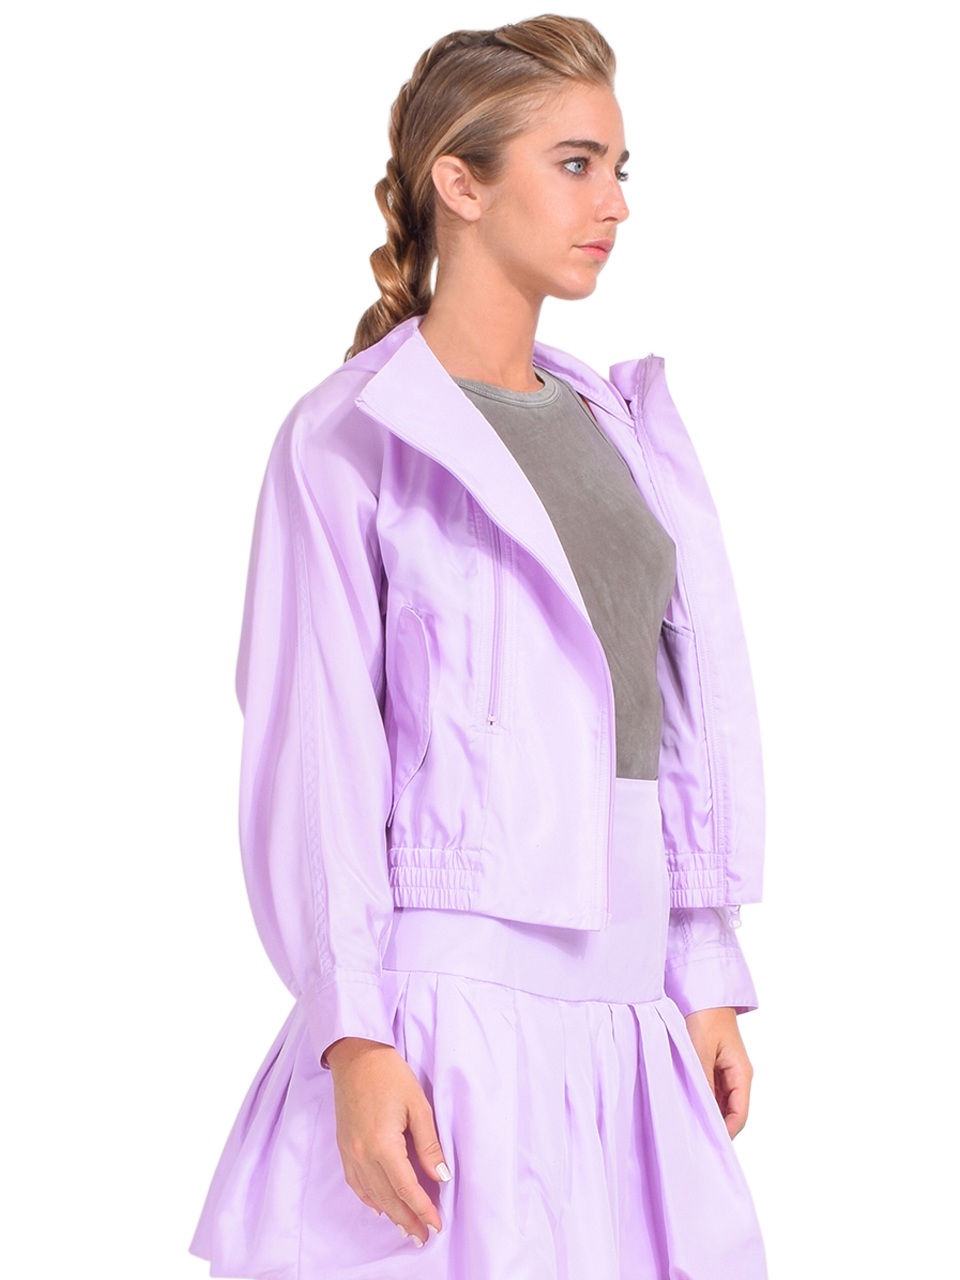 3.1 Phillip Lim Taffeta Hooded Boxing Jacket in Lavender Side View